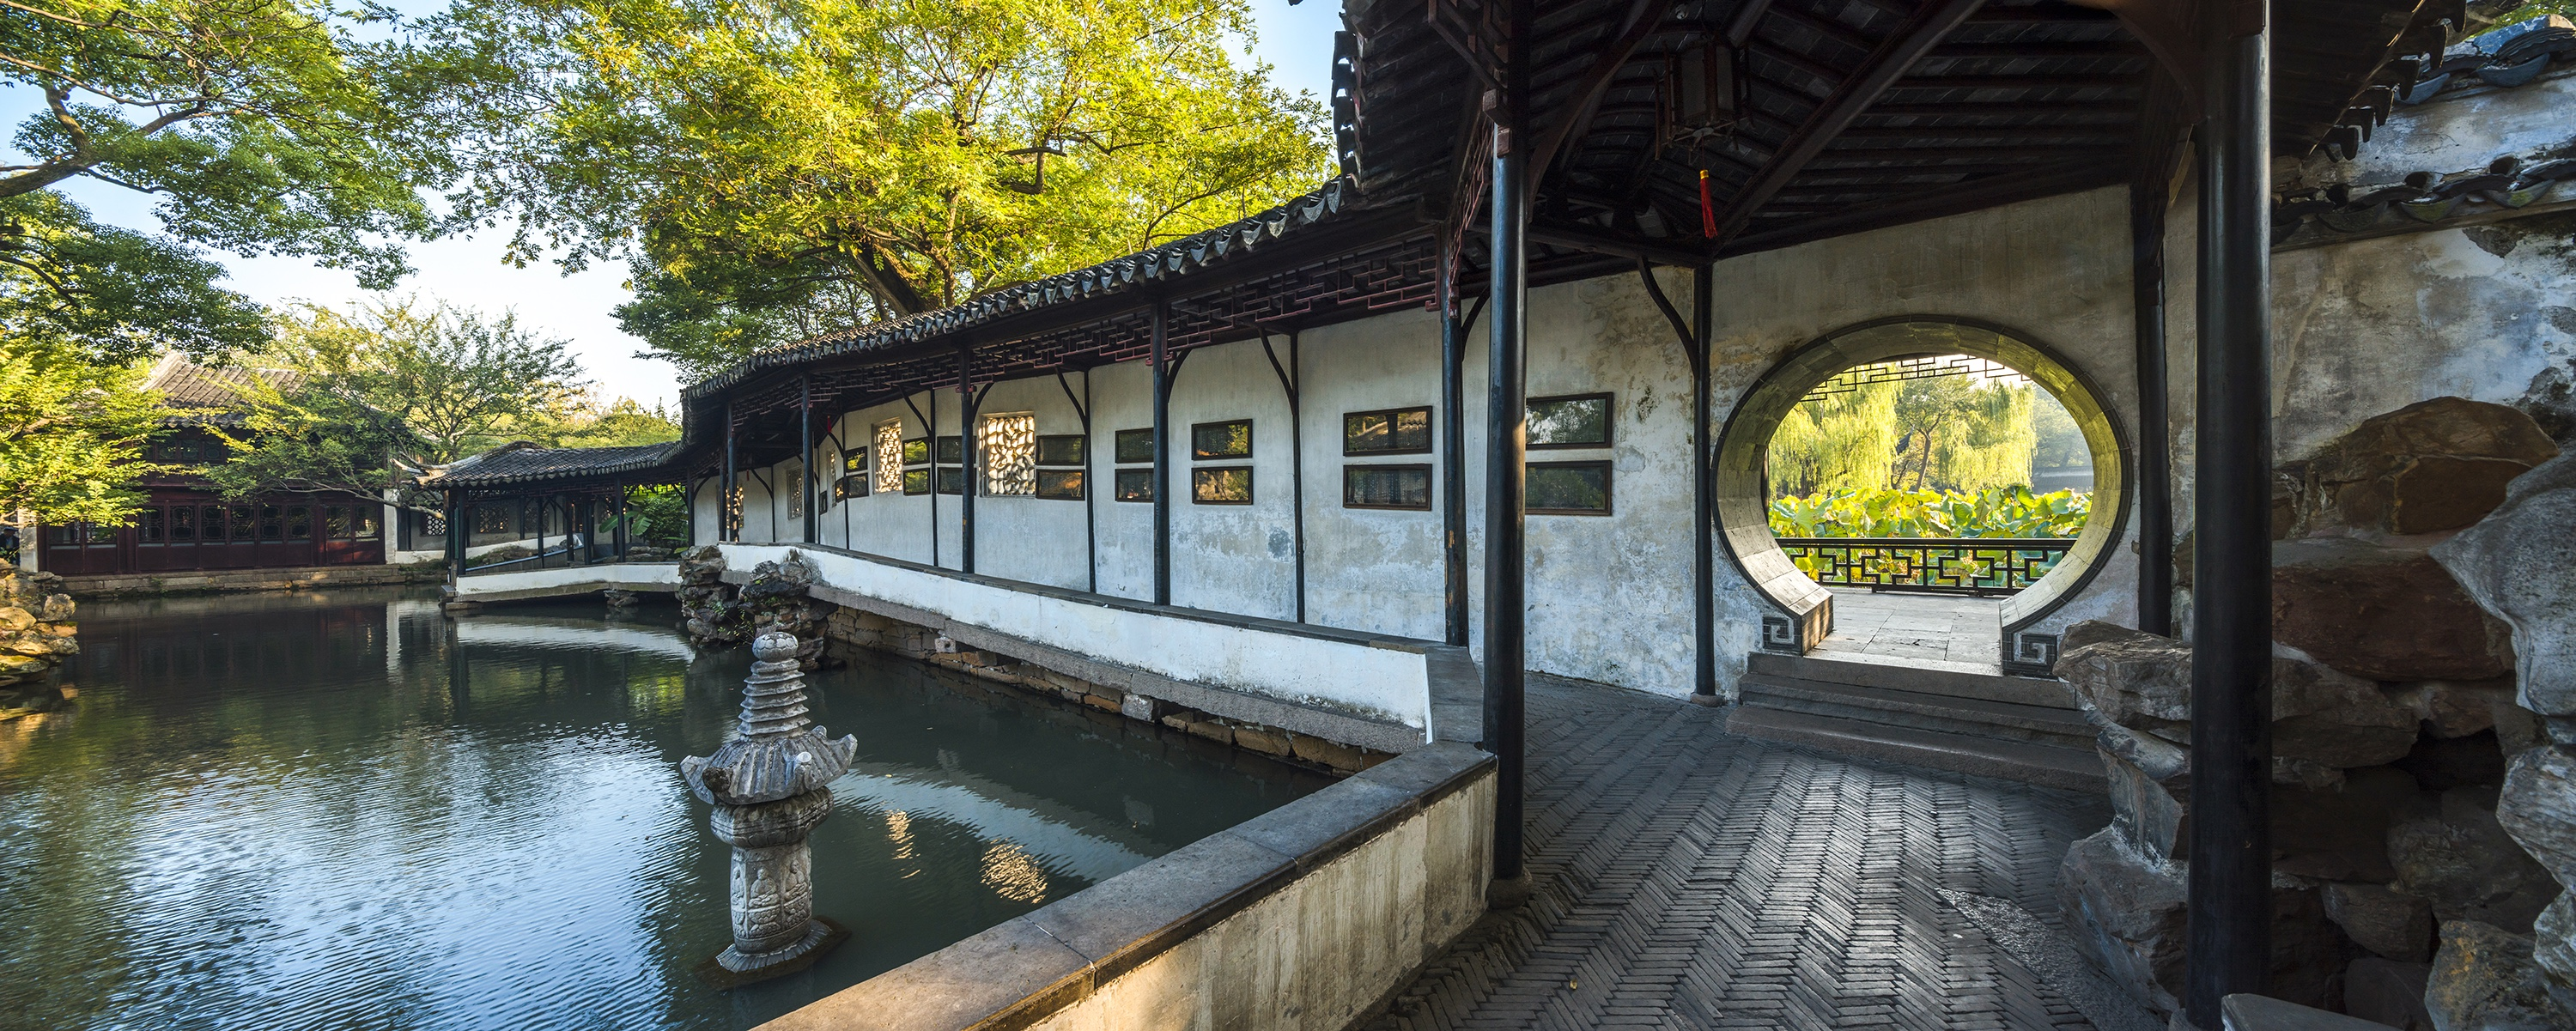 One of the garden of Suzhou